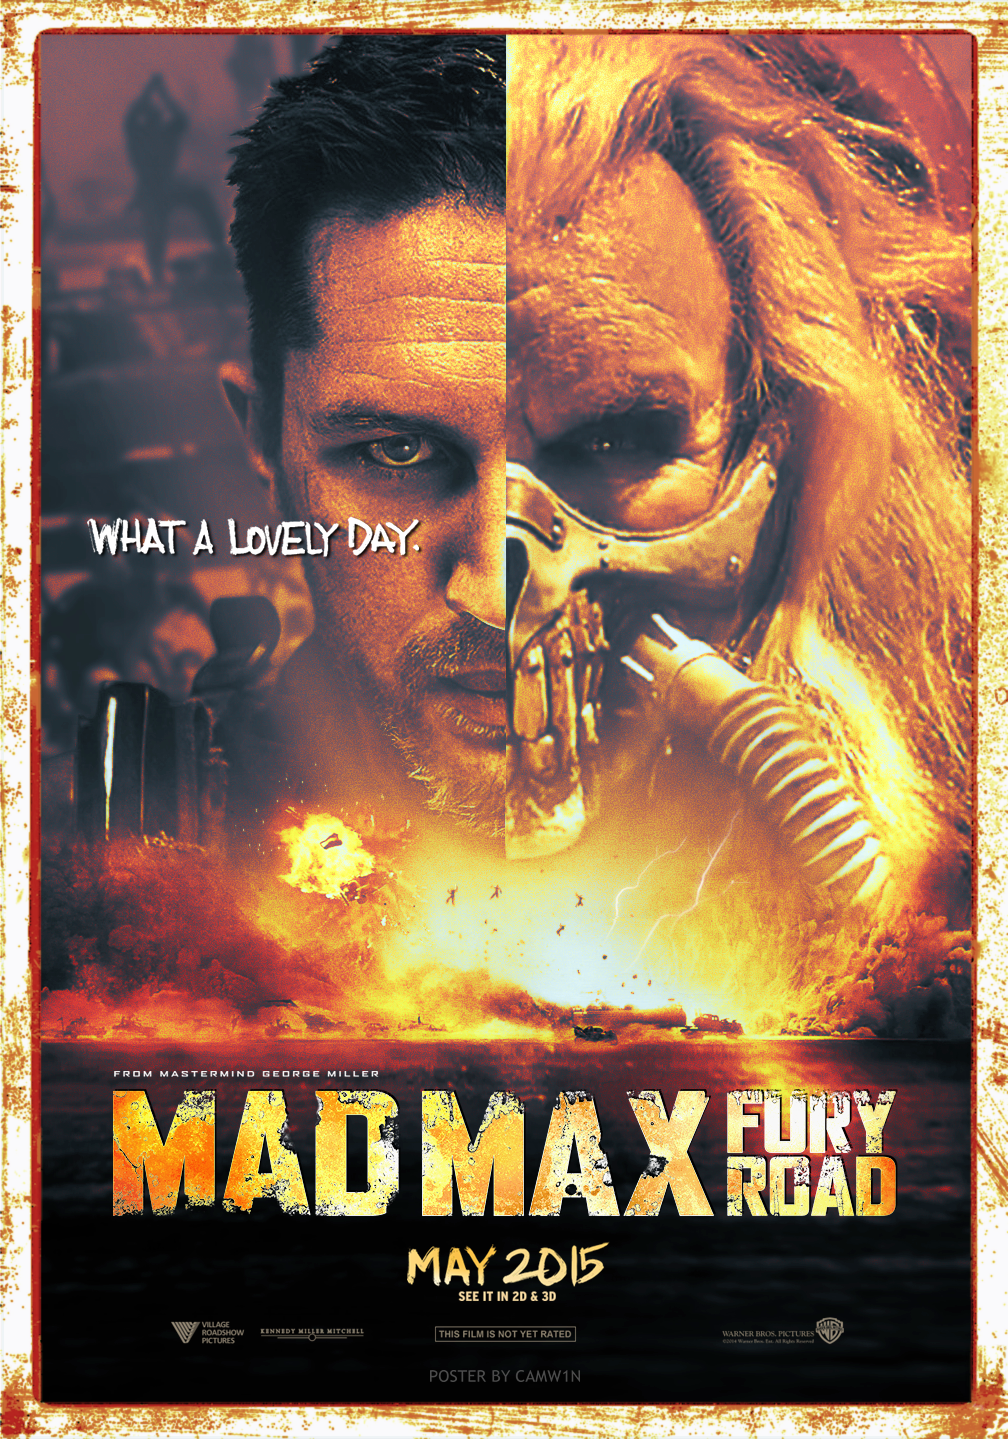 Mad Max Fury Road 2015 Poster By Camw1n On Deviantart